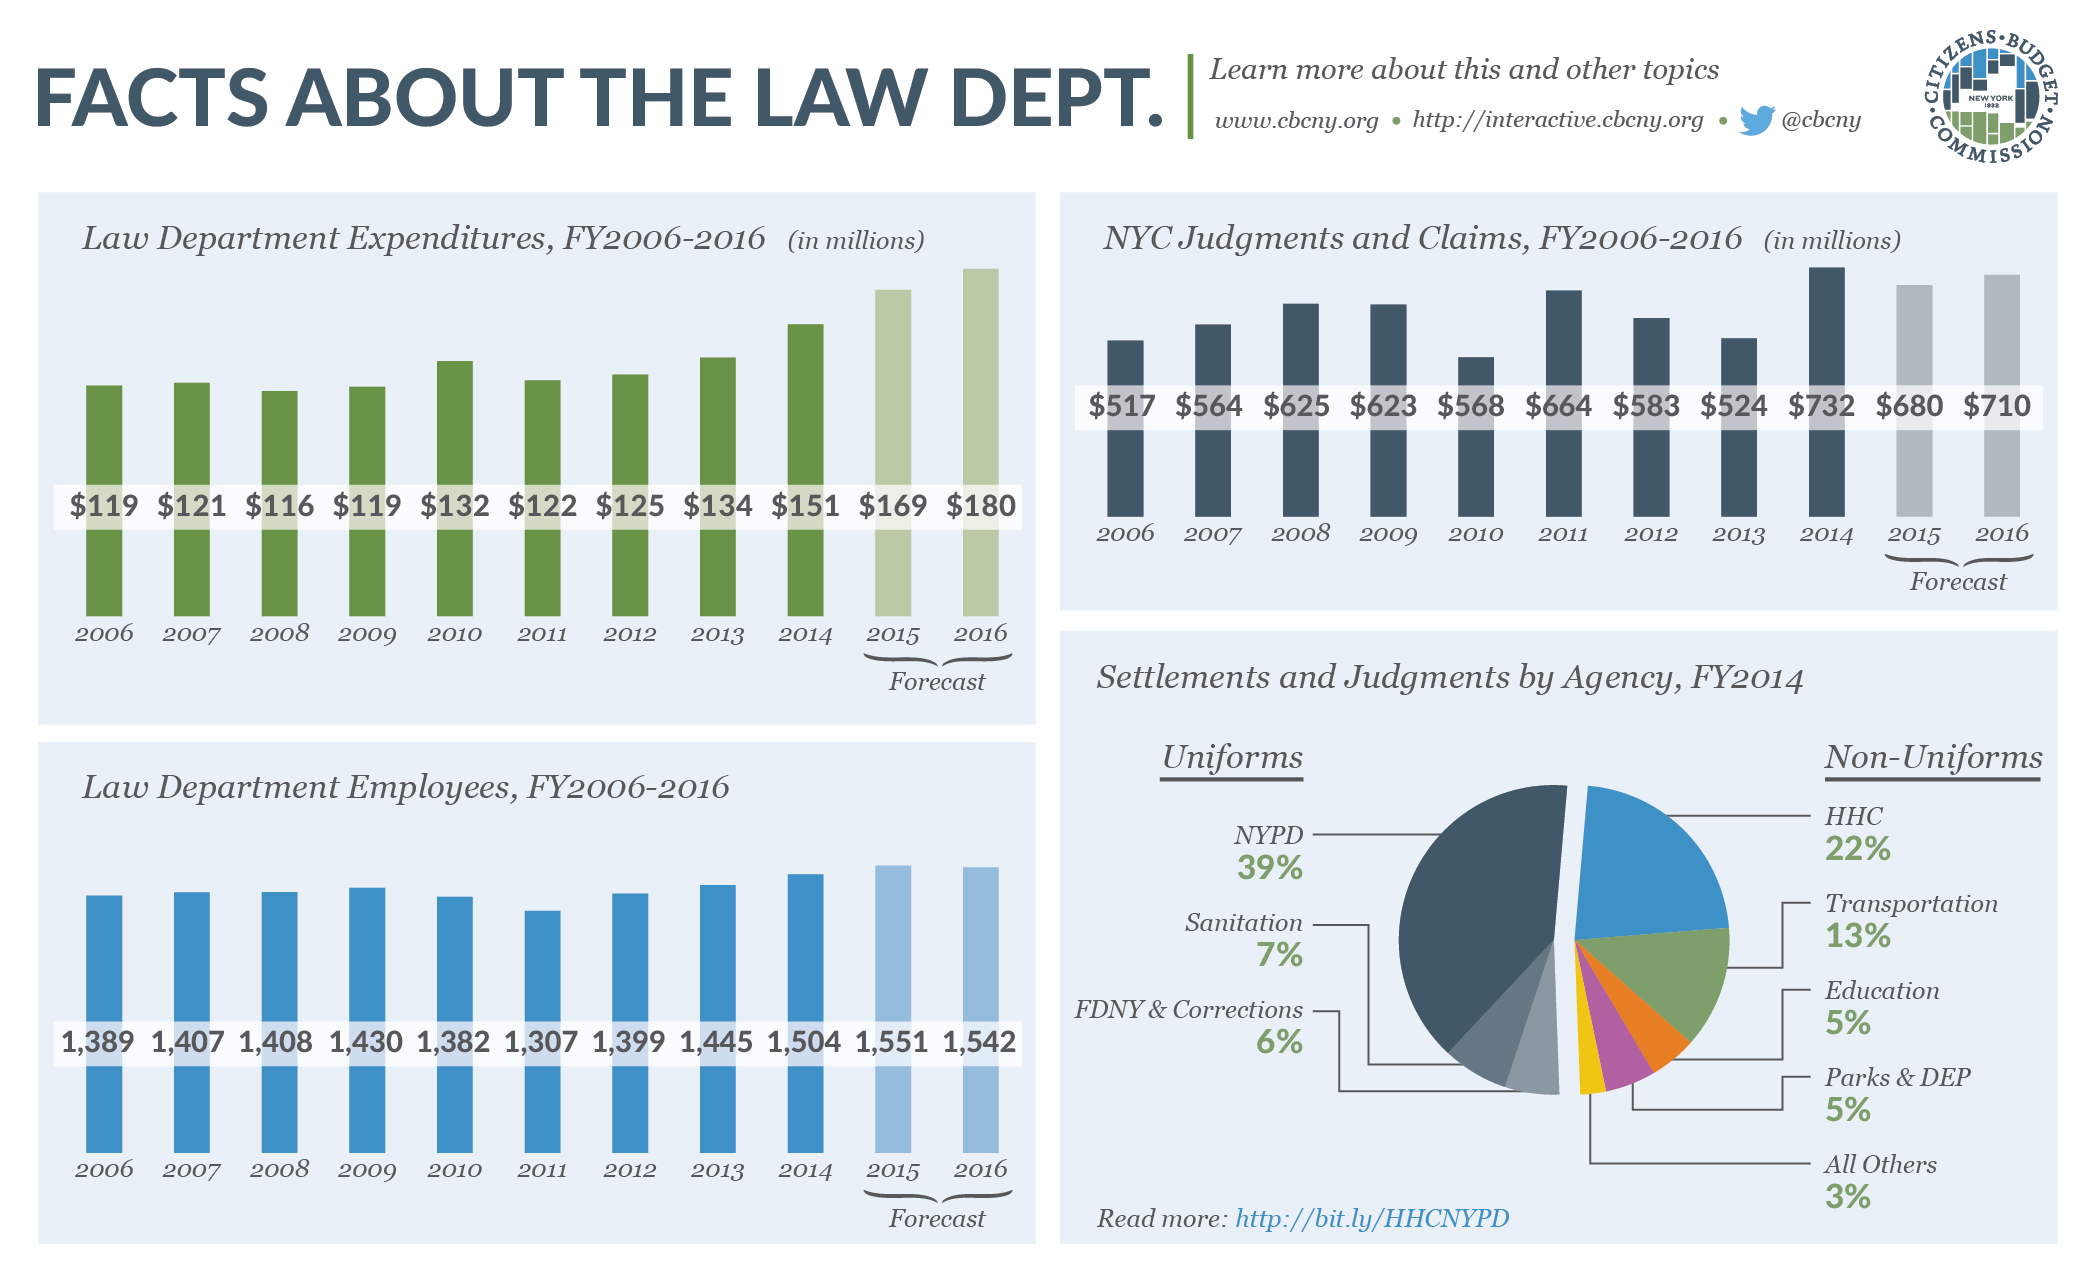 Facts about the NYC Law Department